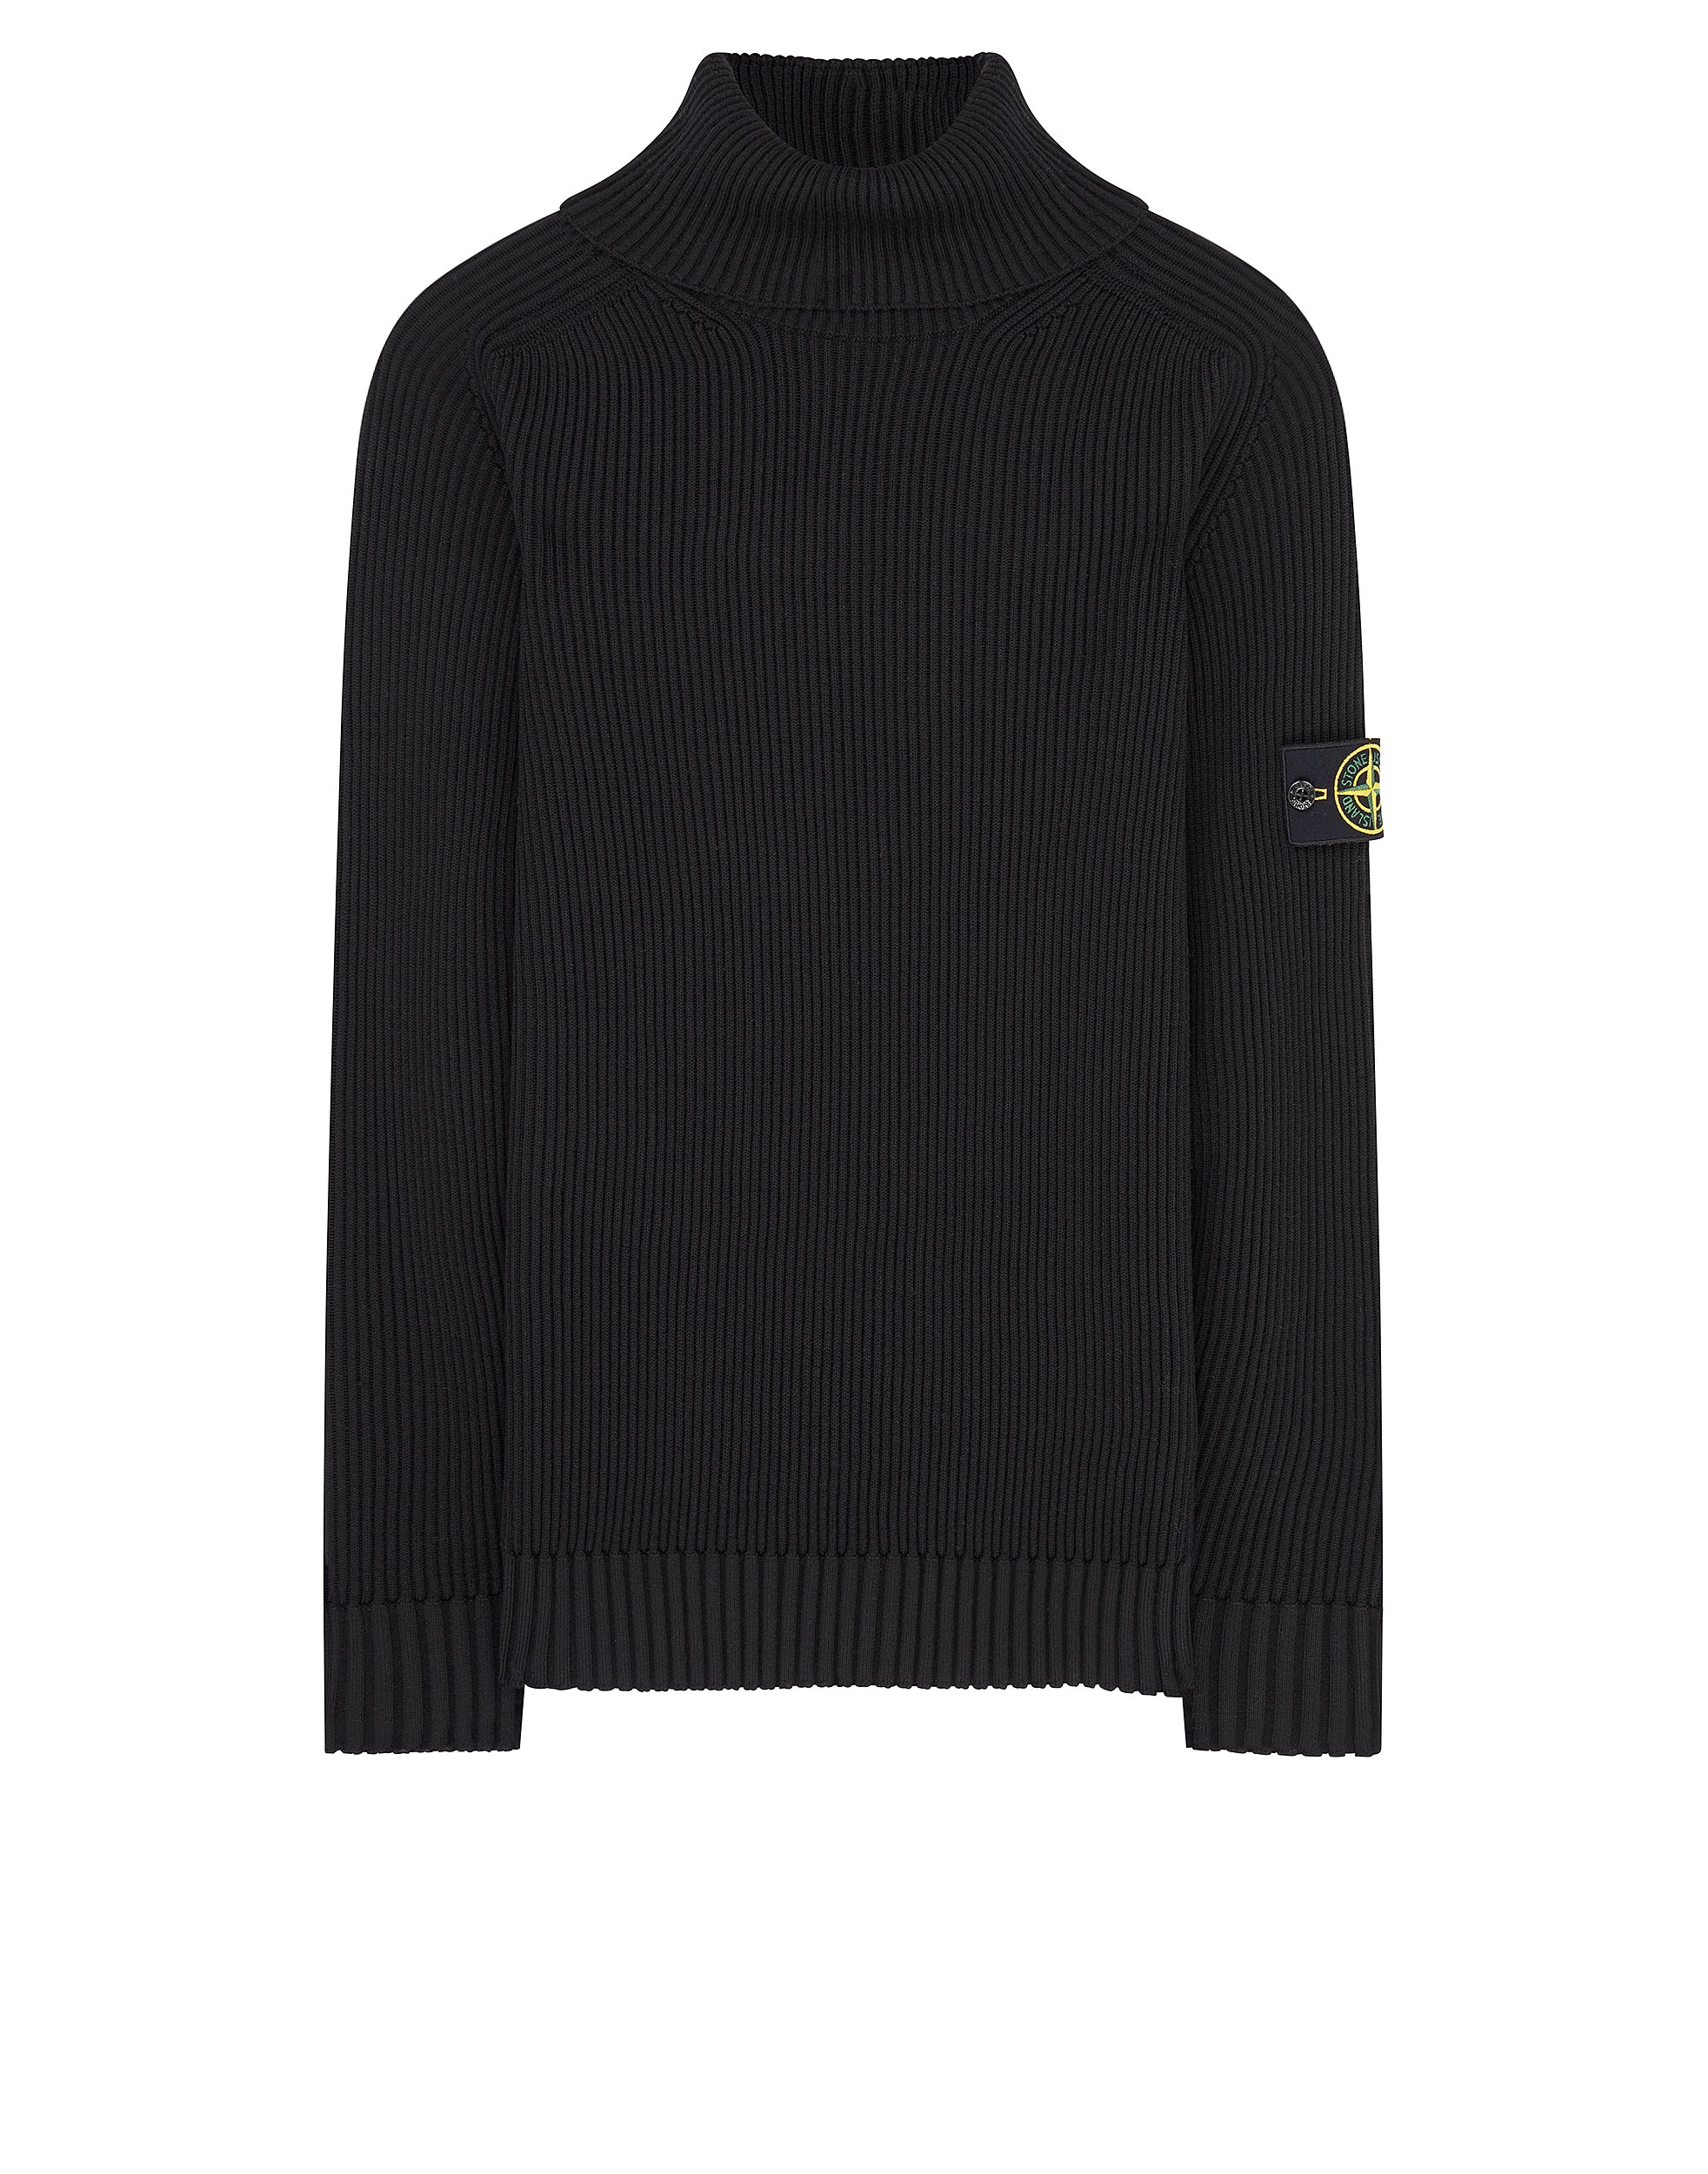 535C2 Turtleneck Knit in Black